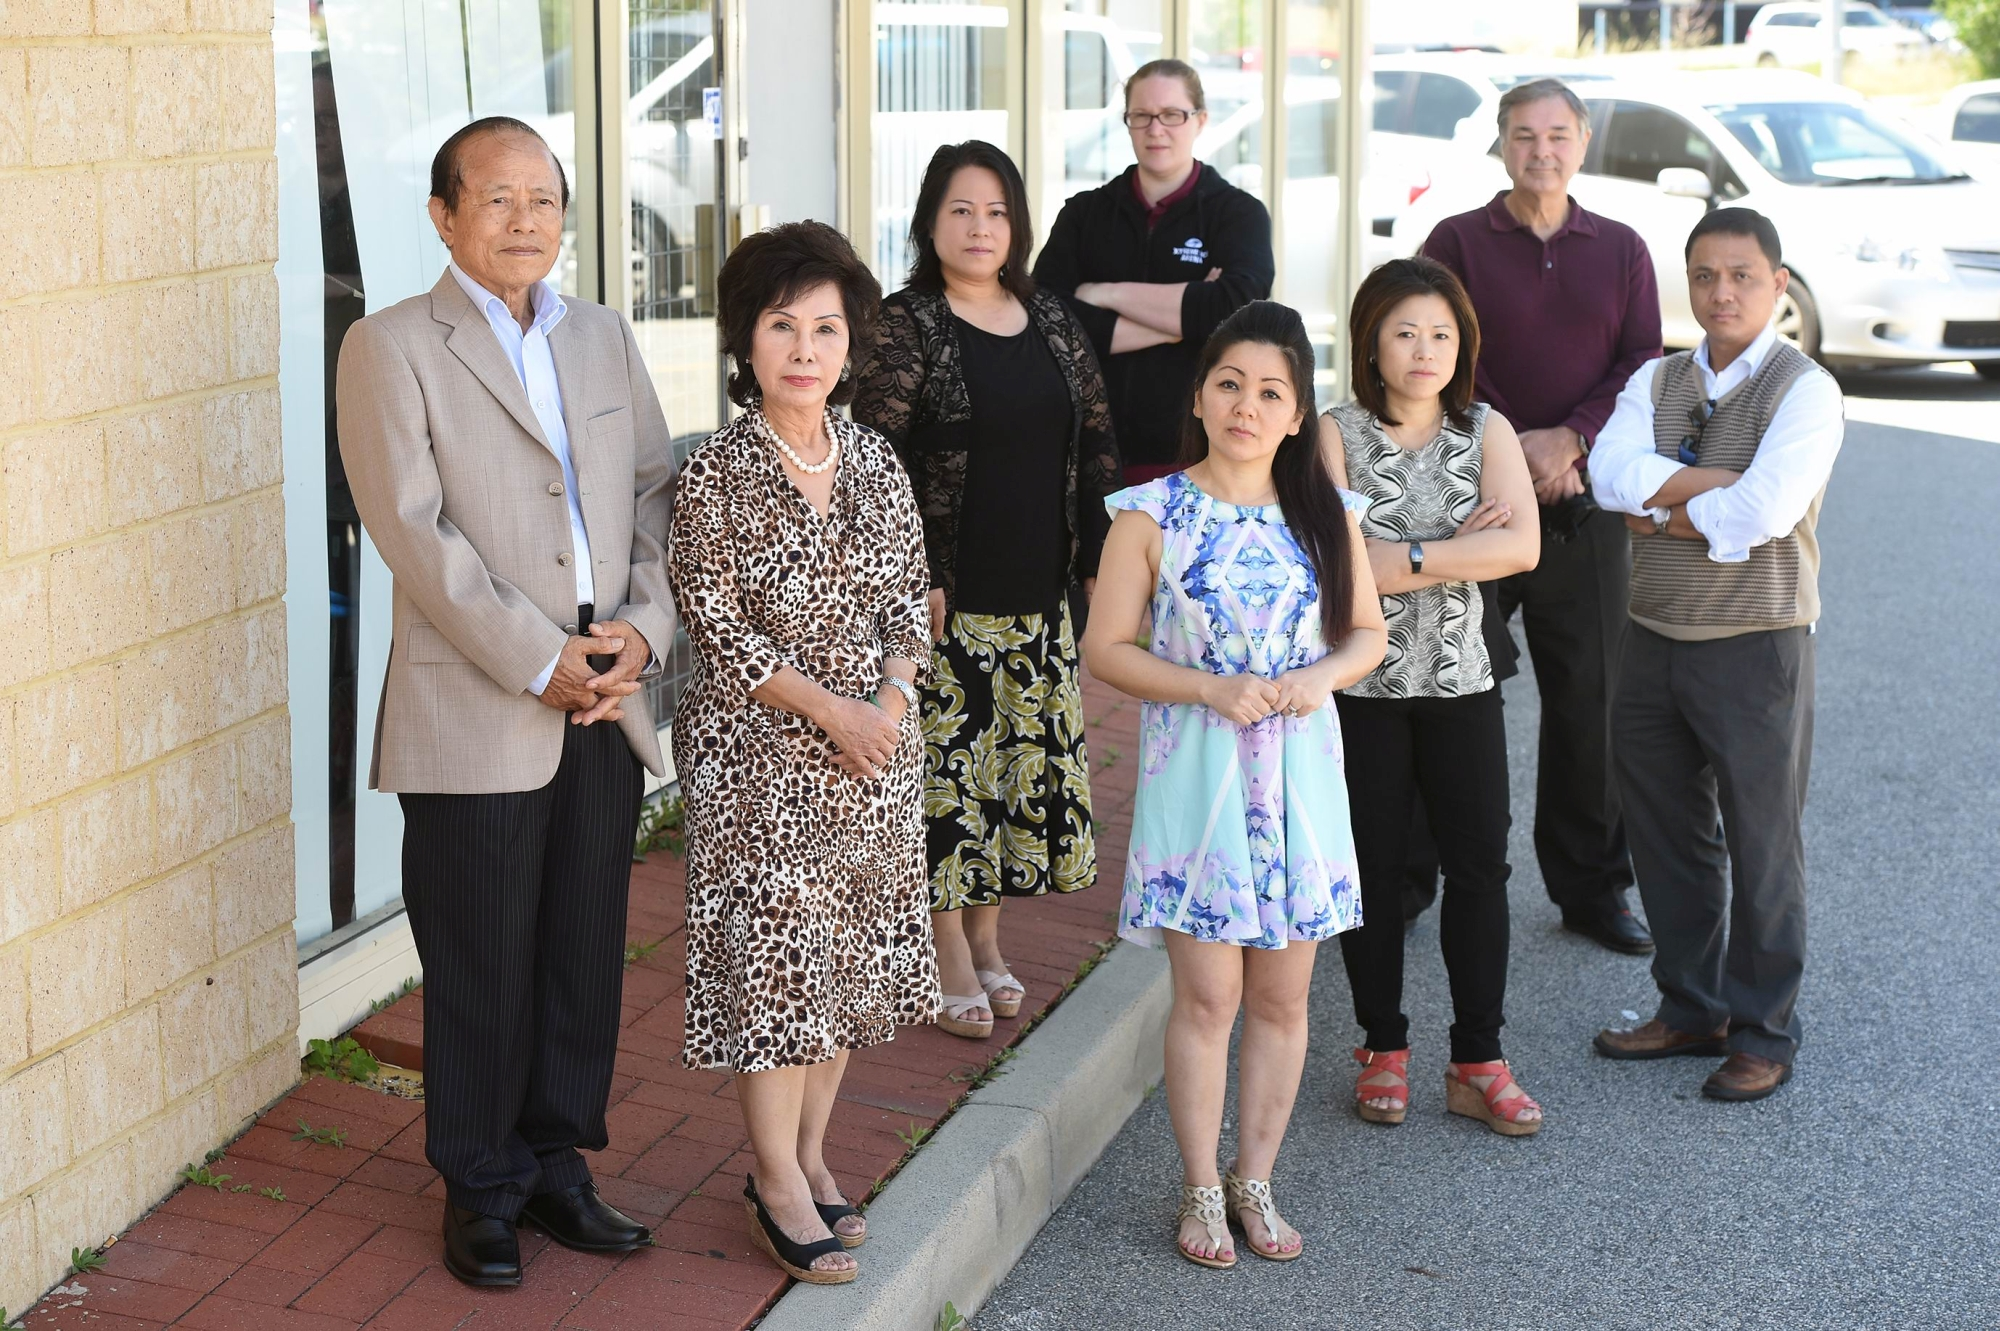 Local business owners (from left) Tuyen Tran, Dau Tran, Vivian Tran, Marie Lowick, Zerlina Nguyen, Serena Tran, Keith Jacob and Tri Le. Picture: Marcus Whisson d427970